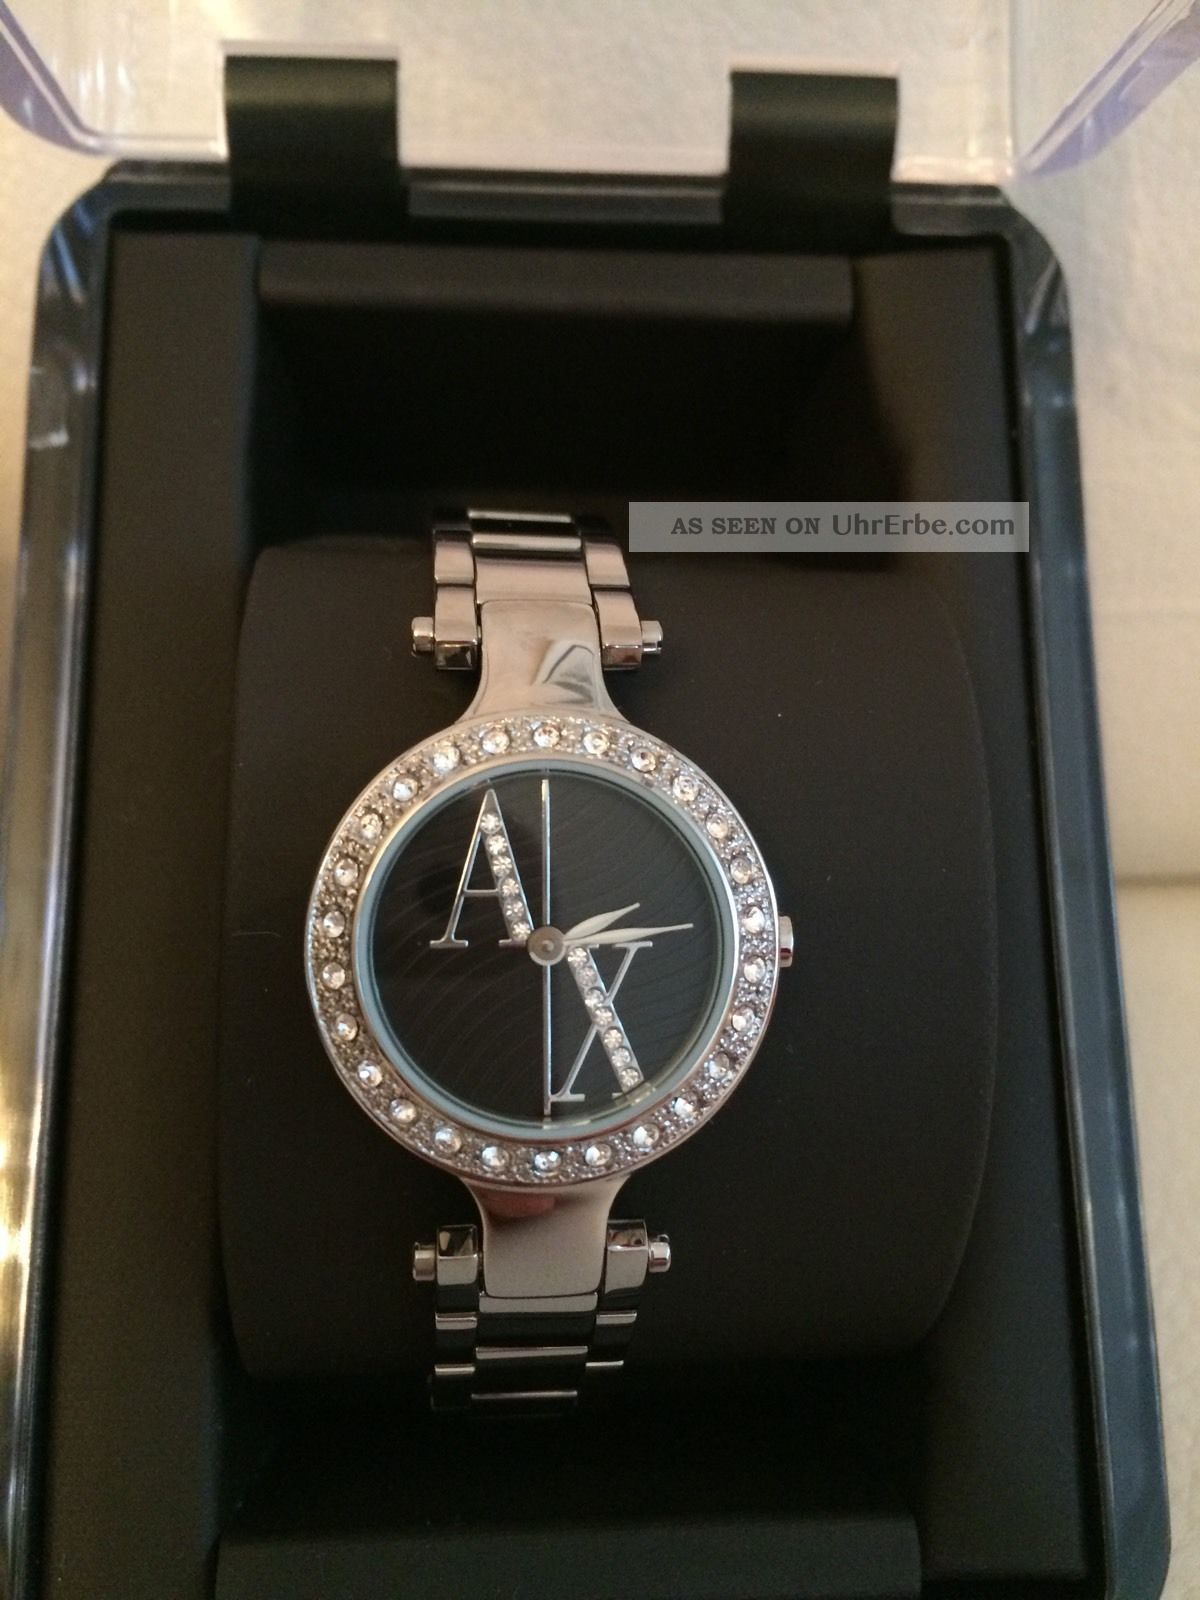 Armani Exchange Damenuhr,  Stainless Steel, Armbanduhren Bild